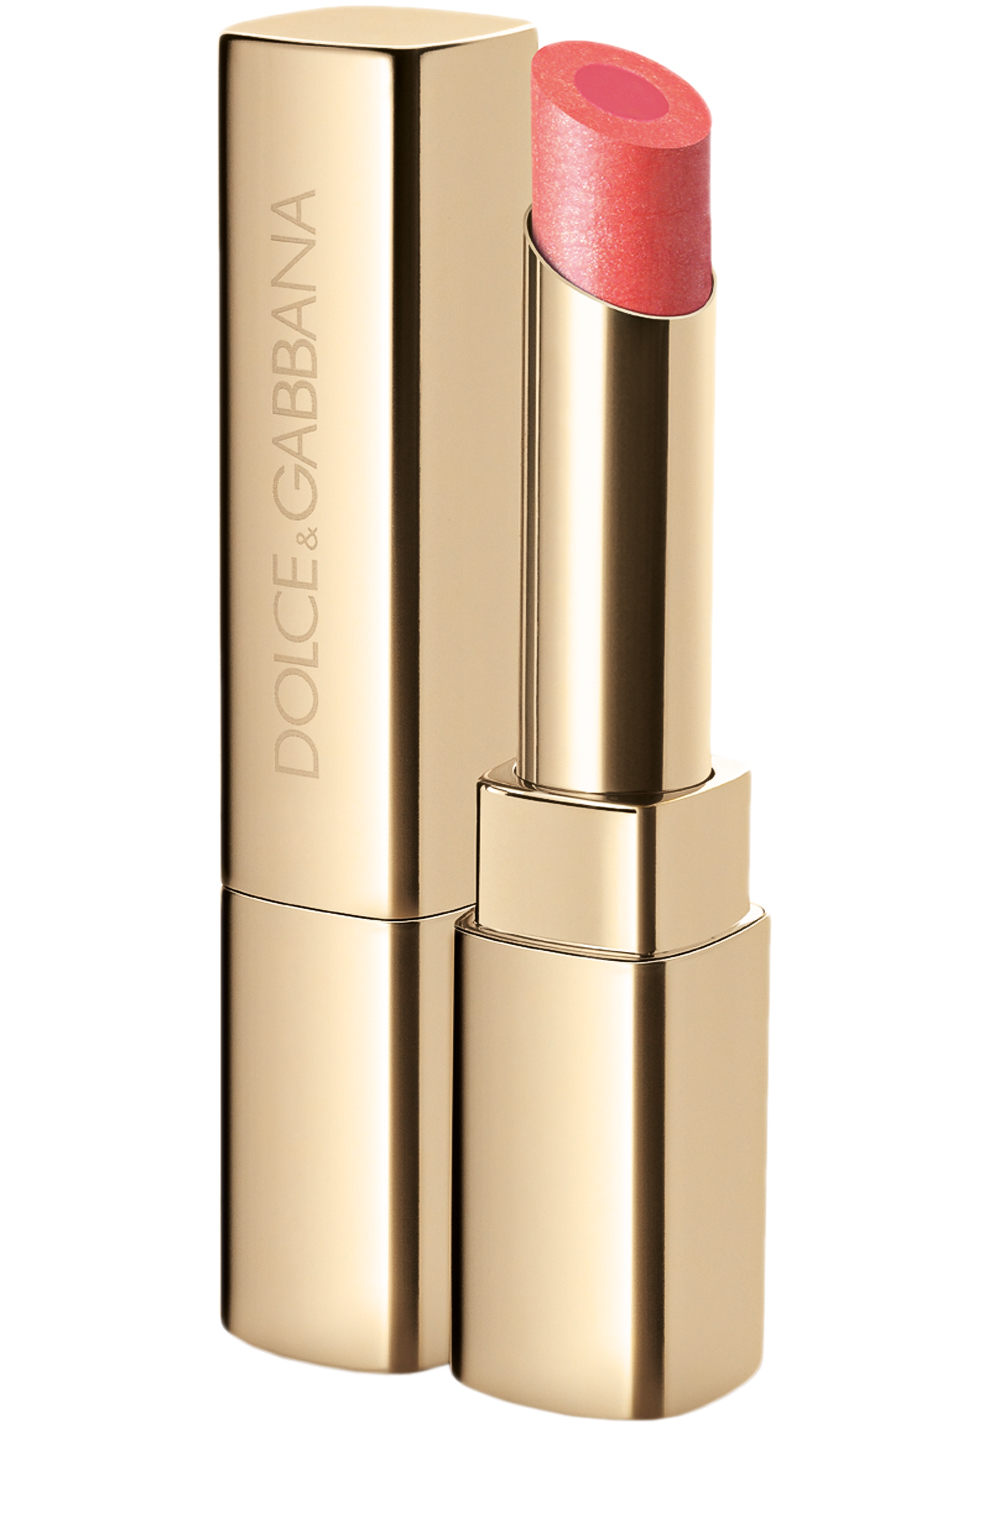 Dolce Gabbana Помада блеск Passion Duo Gloss Fusion Lipstick Sensation